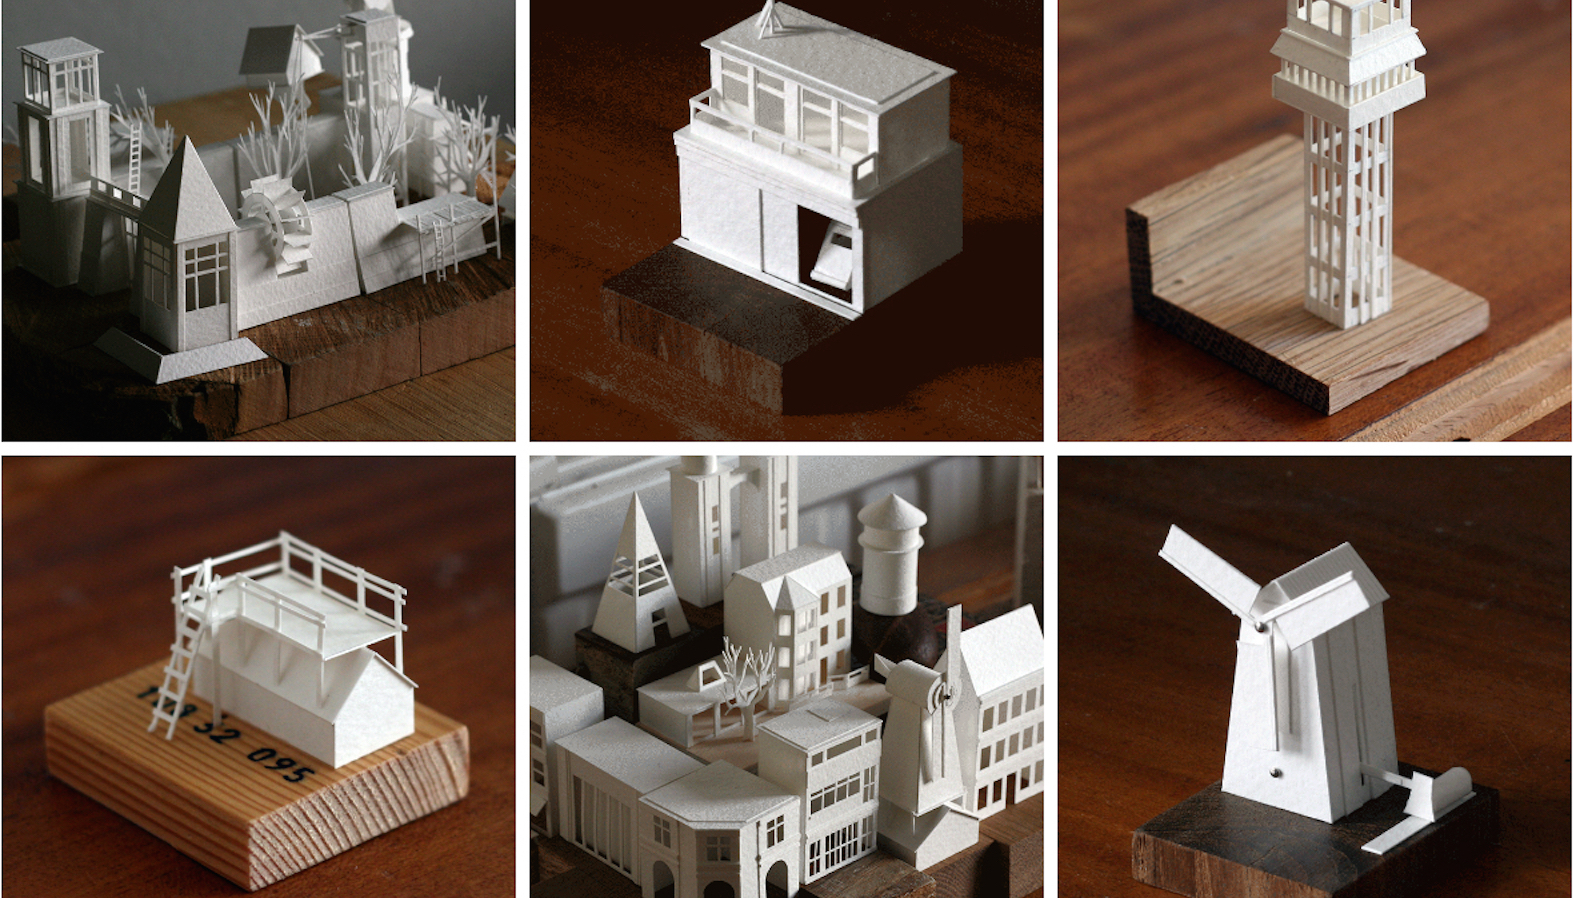 This artist built a tiny city out of 365 paper models, created